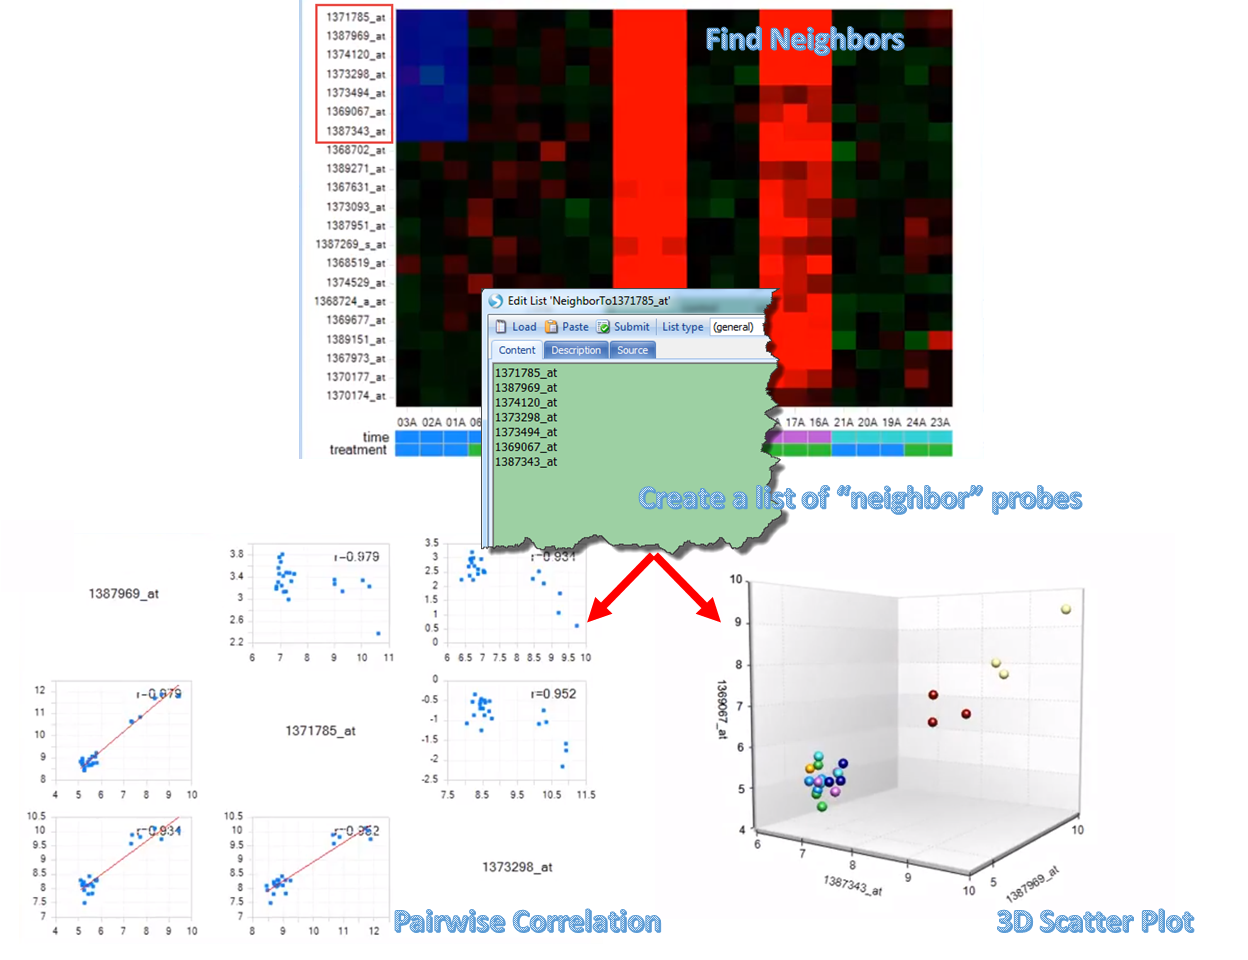 "Probes with similar pattern to probe 1371785_at are detected through Find Neighbors module. After a list of ""neighbor"" probes created, users can visualize the data pattern among those probes through pairwise correlation plots or 3D scatter plots."